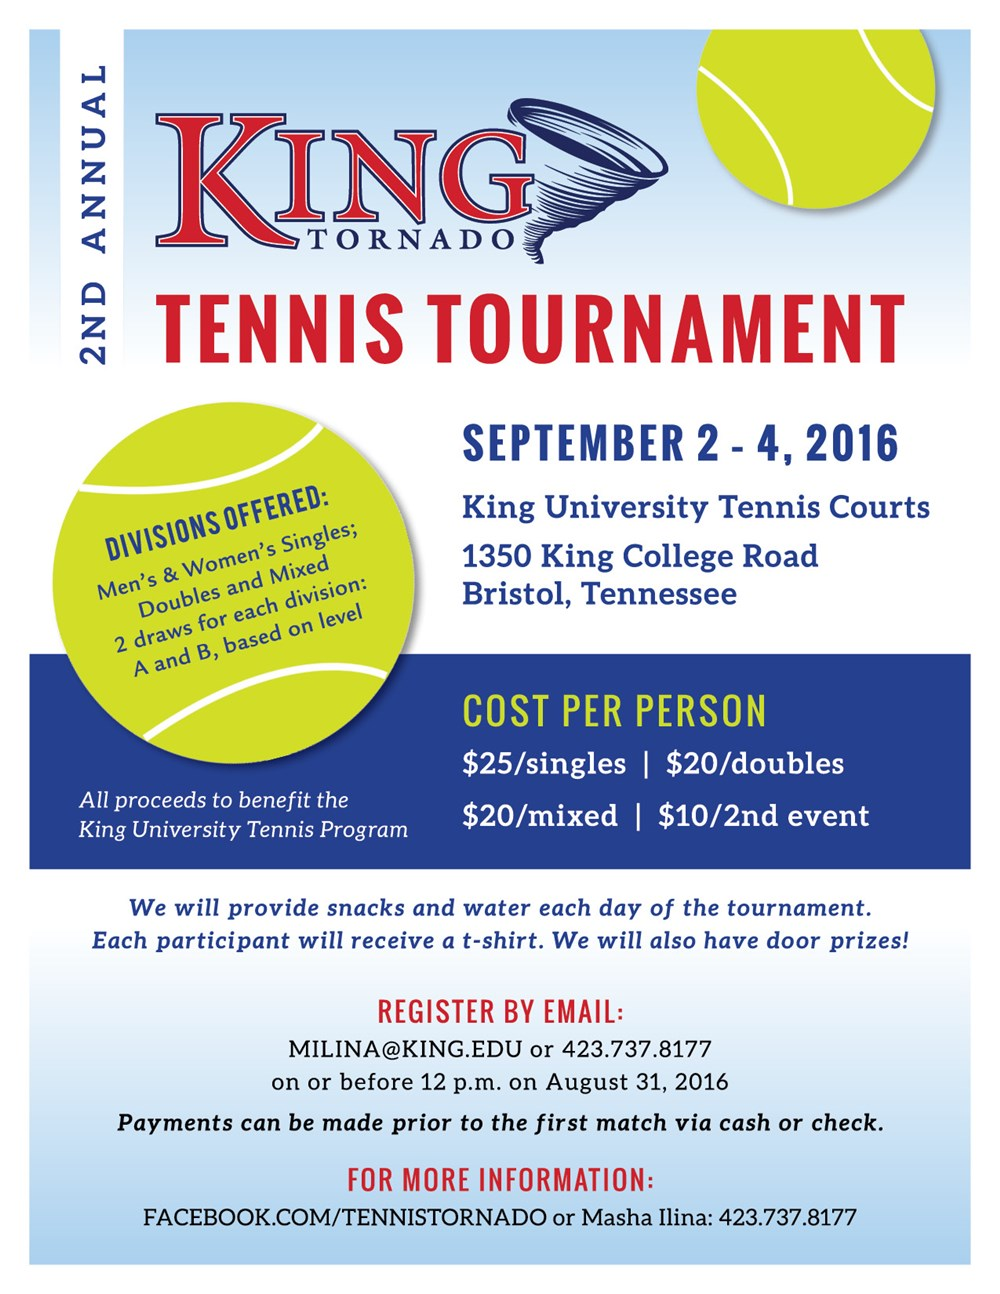 2016_King_University_Tennis_Tournament_Flyer_Revised